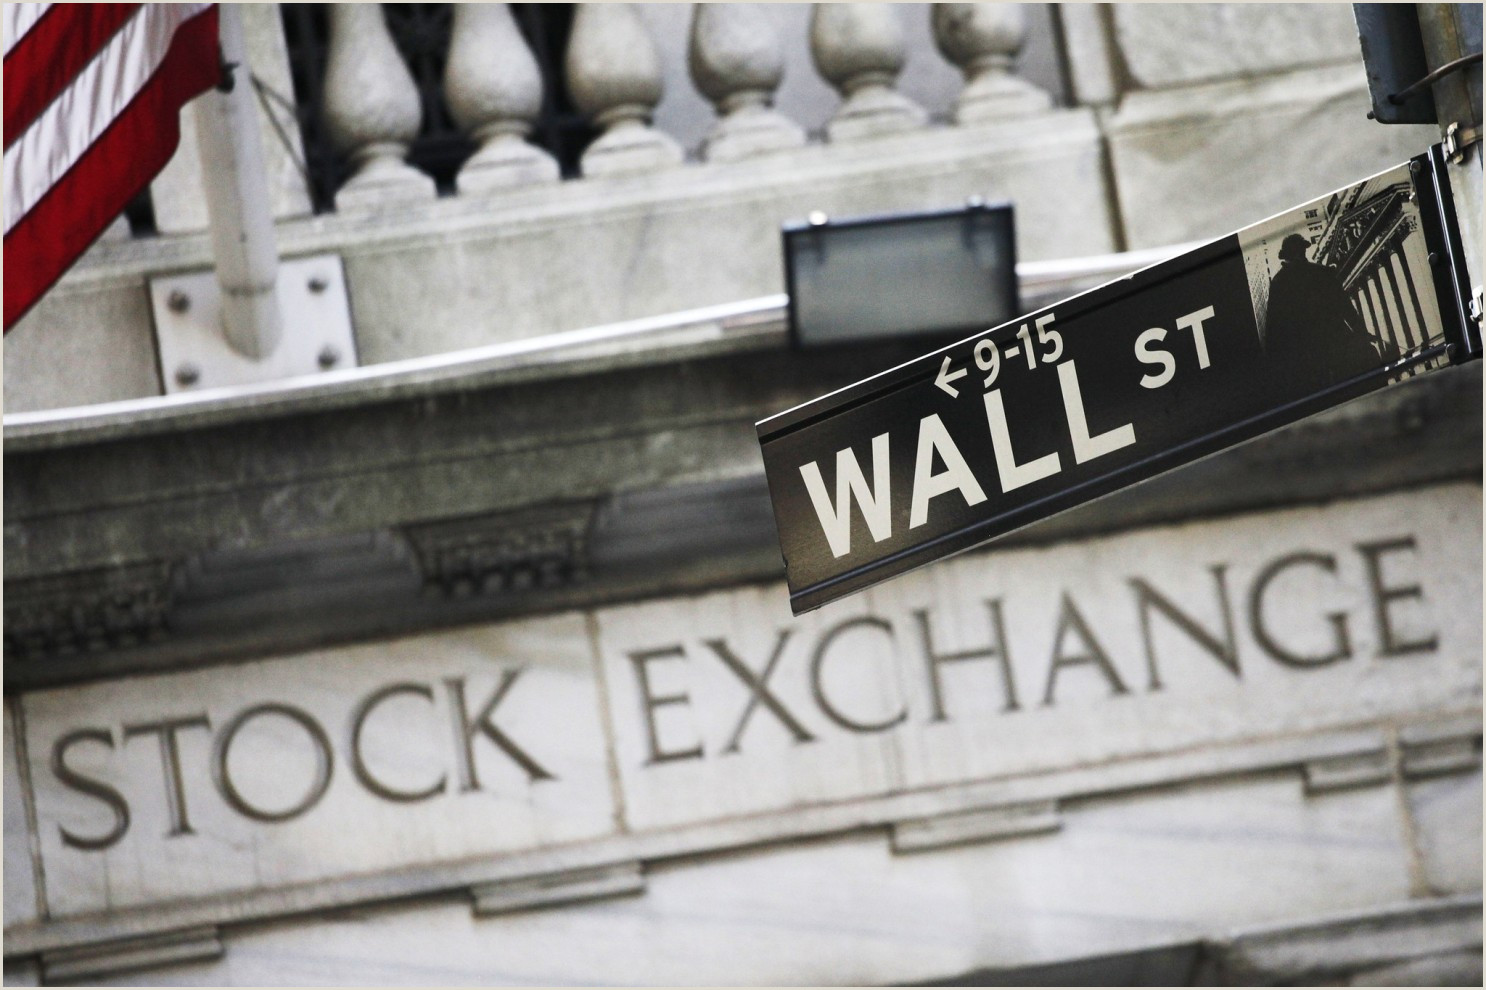 Best Business Cards To Churn Indexes Inch Up As Stocks Churn Markets Await Trade Deal